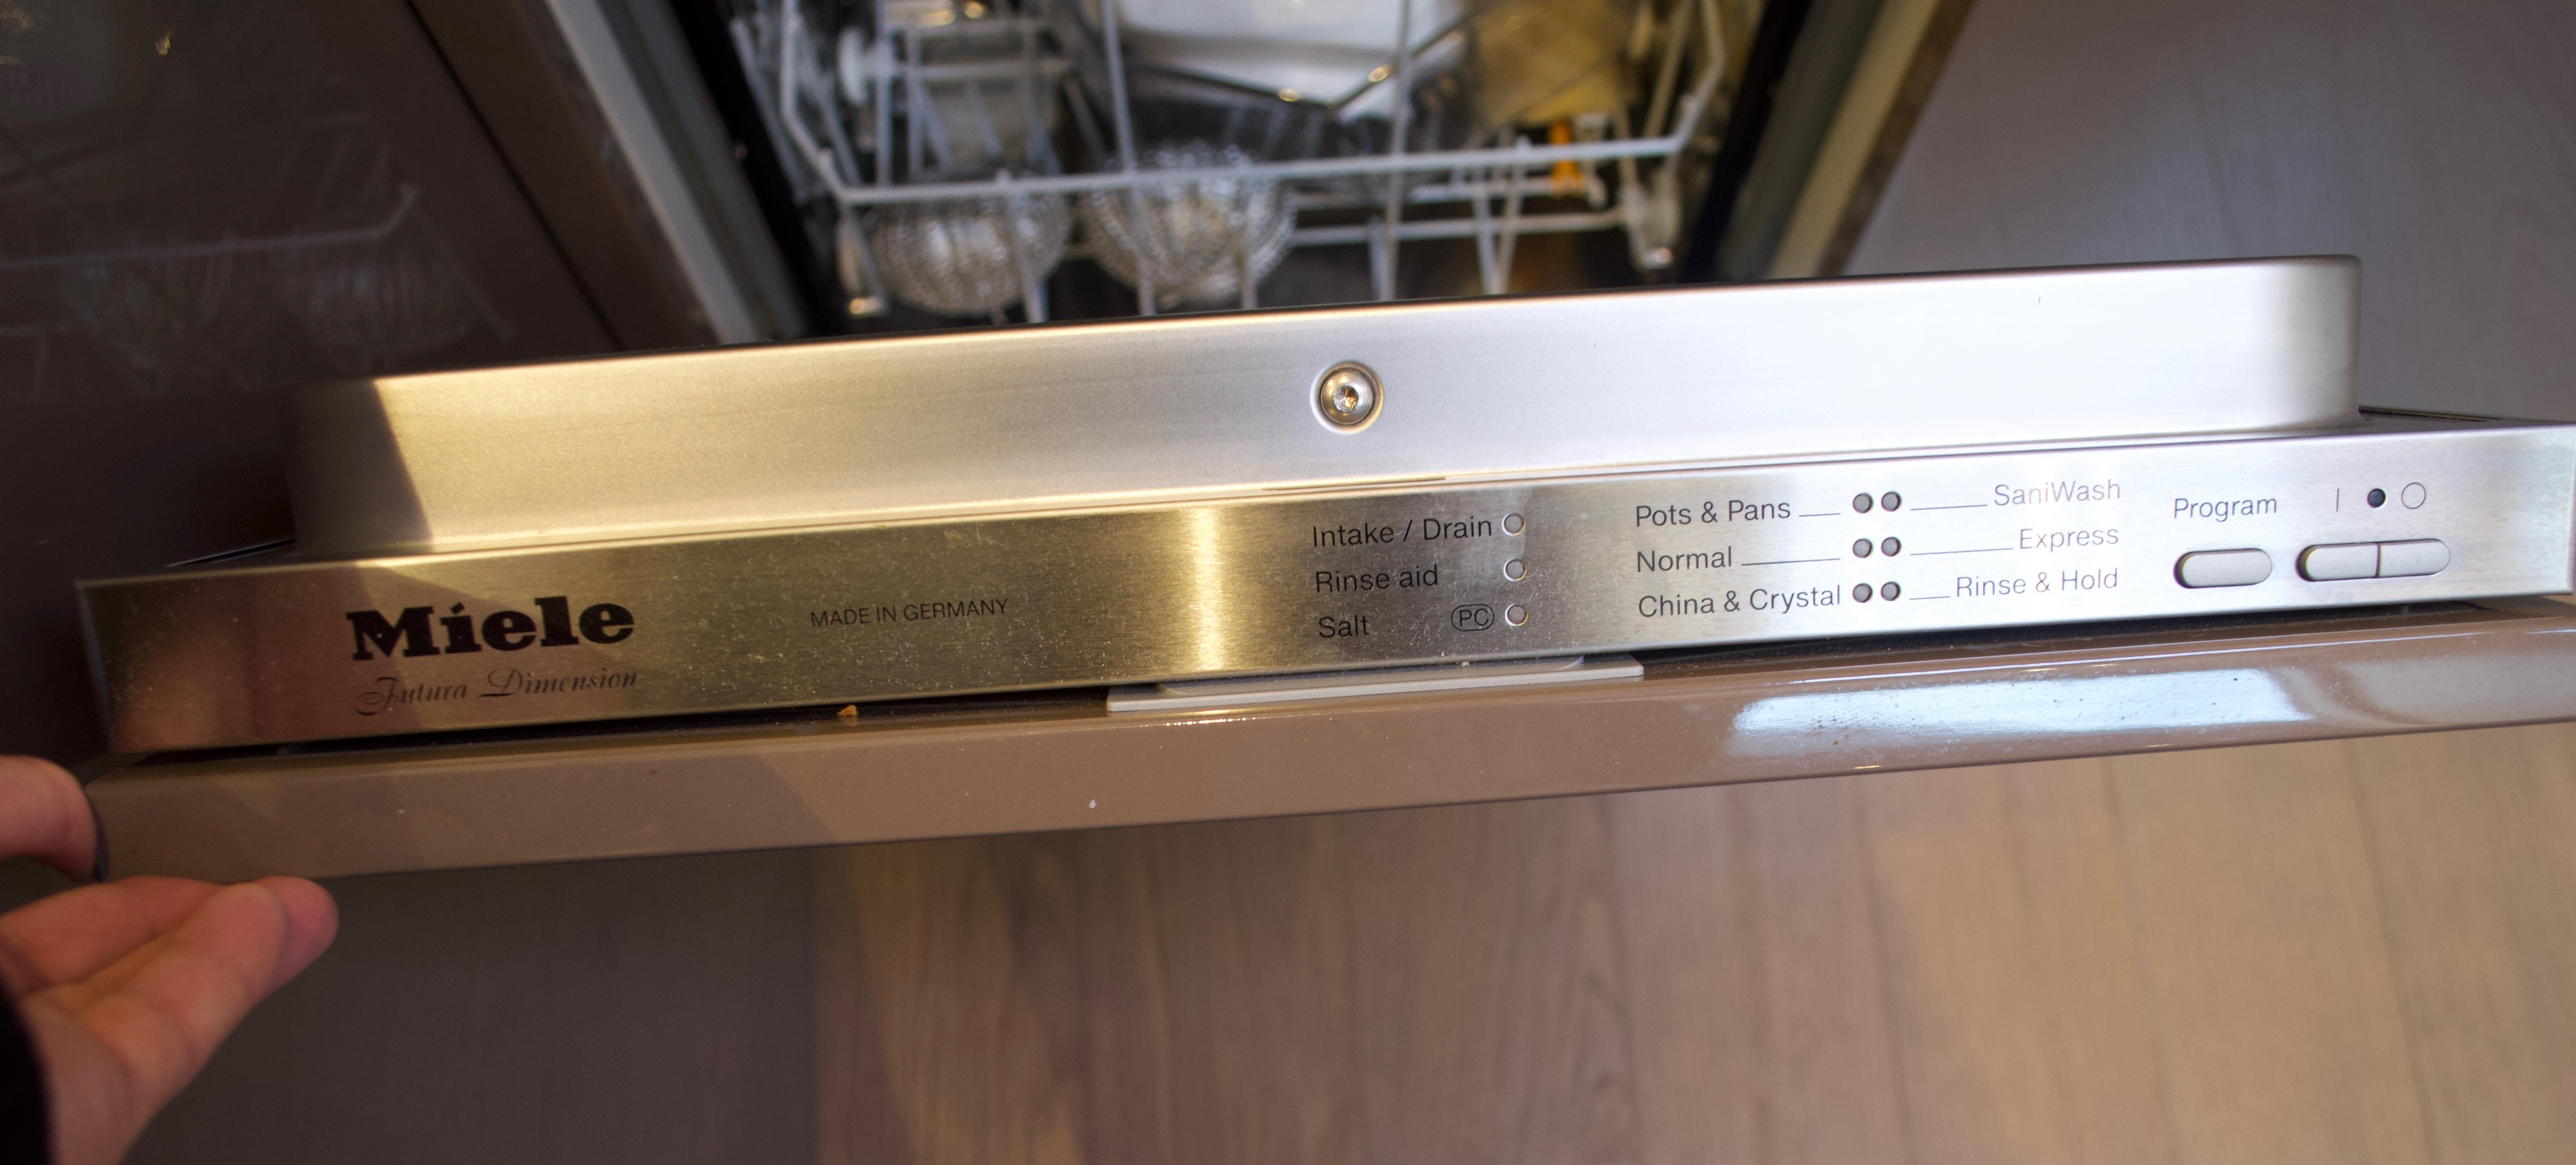 Dishwasher - Miele